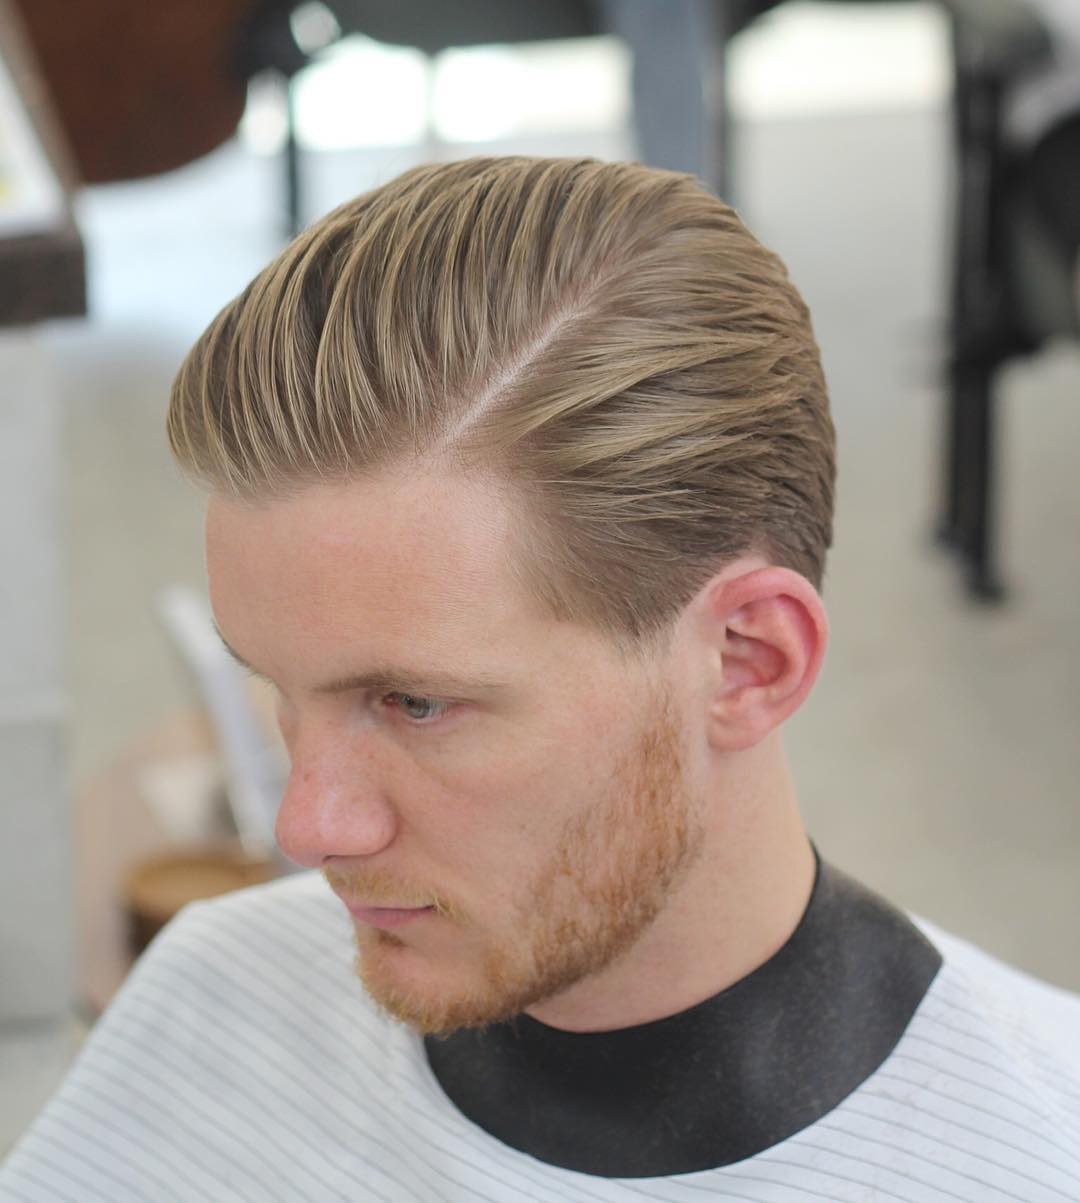 alan_beak-medium-length-mens-haircut-scissor-cut